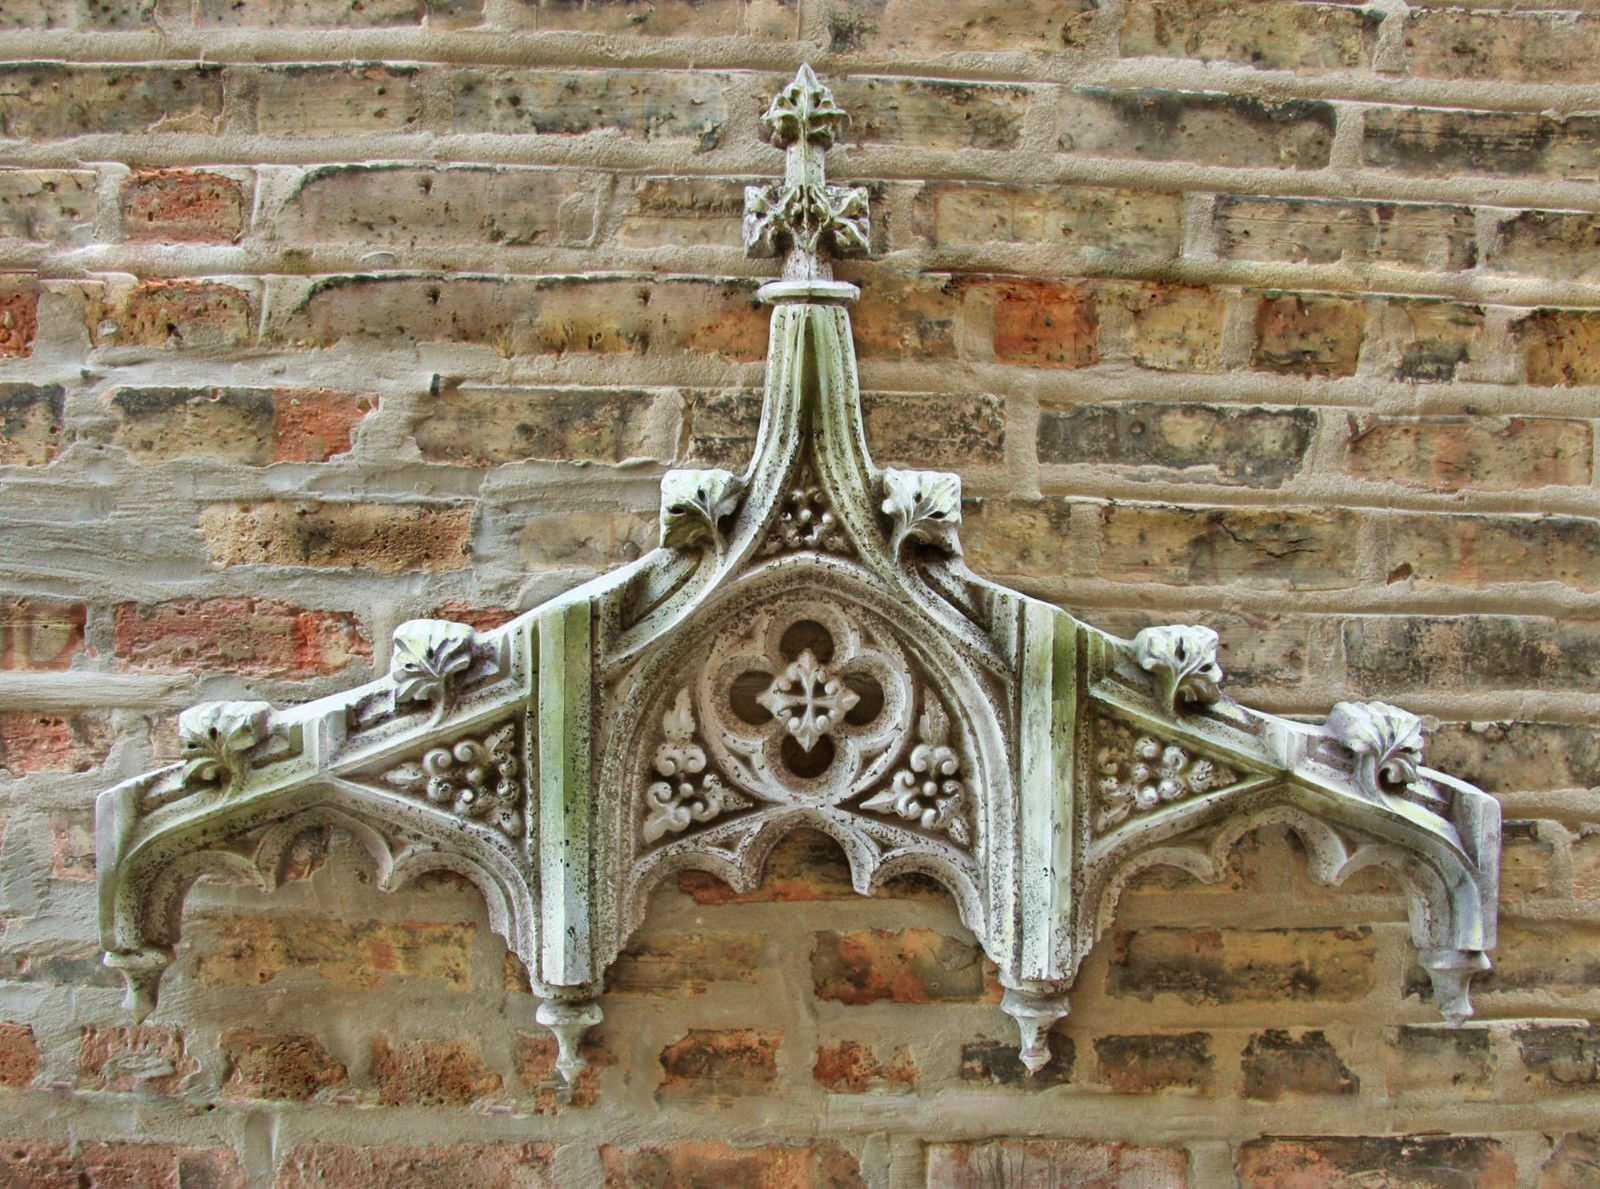 Chartres Tracery Header Garden Wall Art Decor Sculpture by Orlandi FS7795